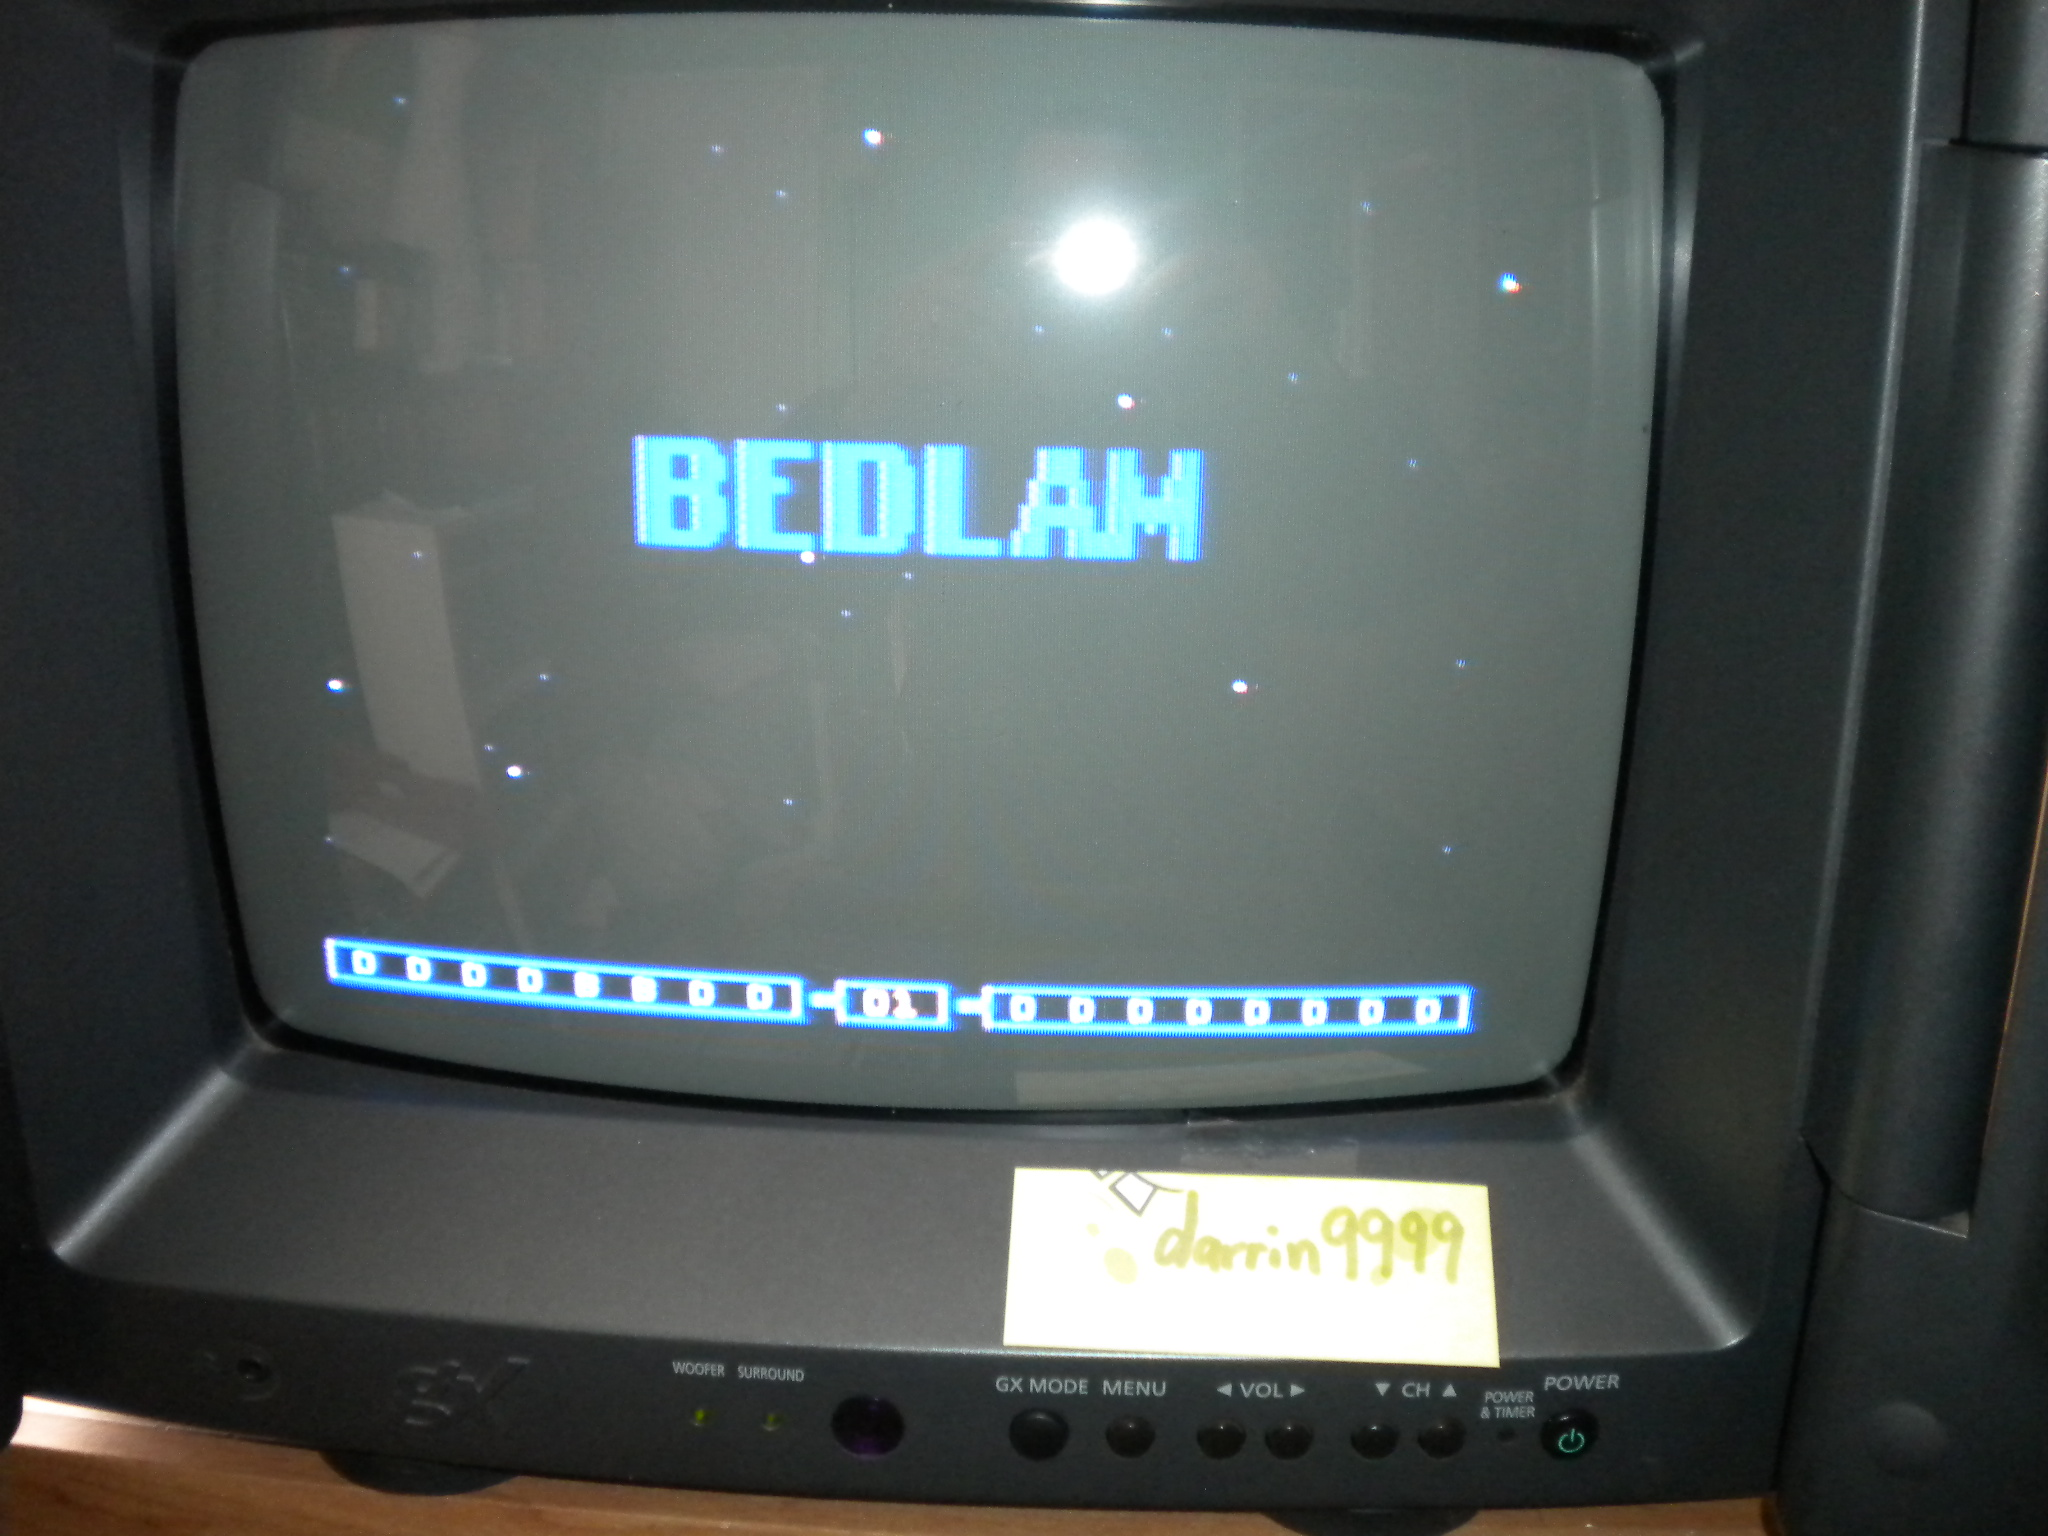 Bedlam 16,300 points